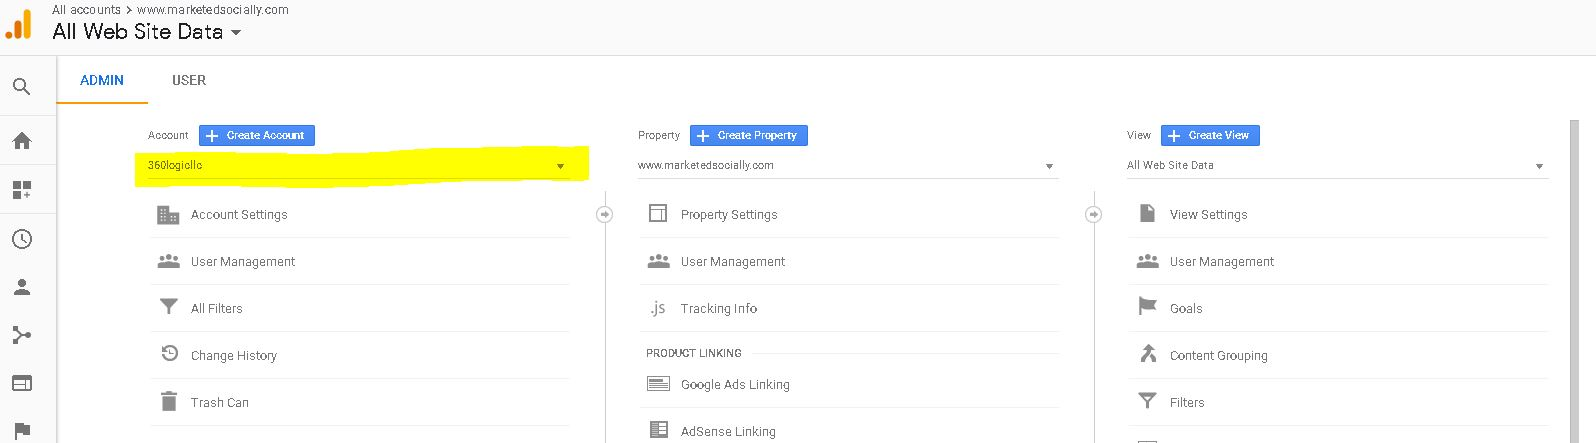 How to add a new website to Google Analytics